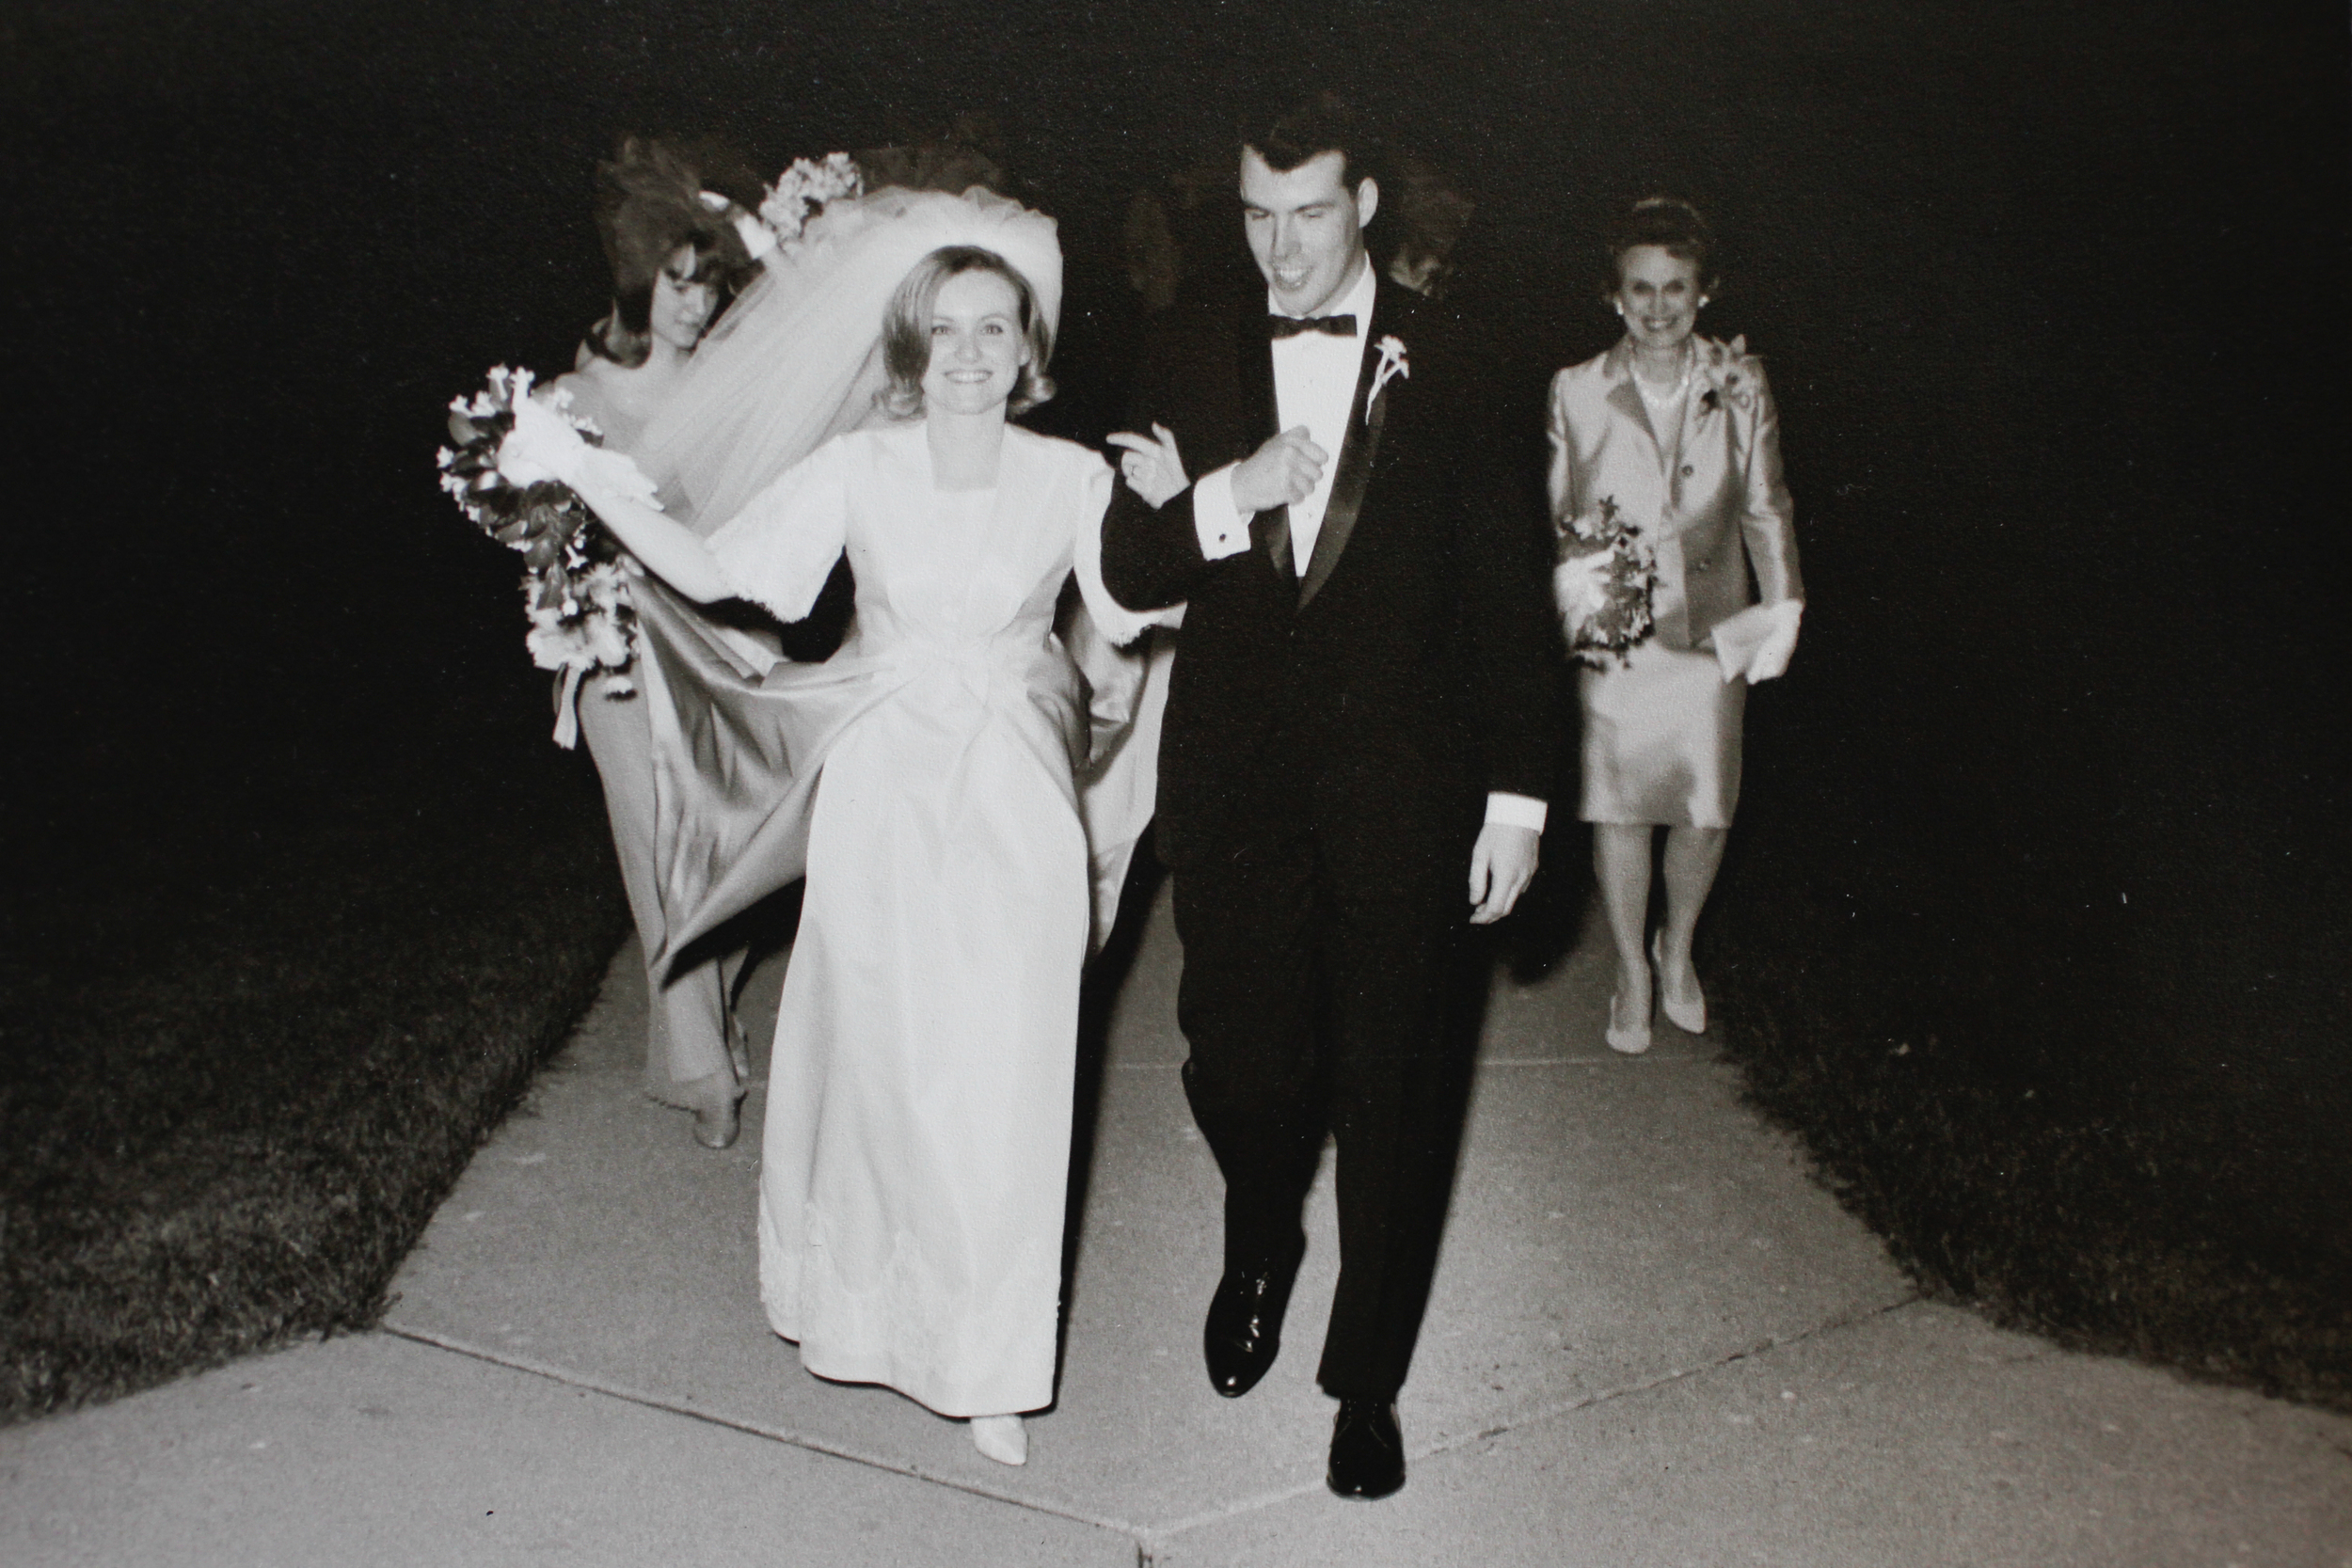 Mom and Dad reflect their wedding day, April 30, 1966 during a family trip to DC to celebrate their 50th anniversary.